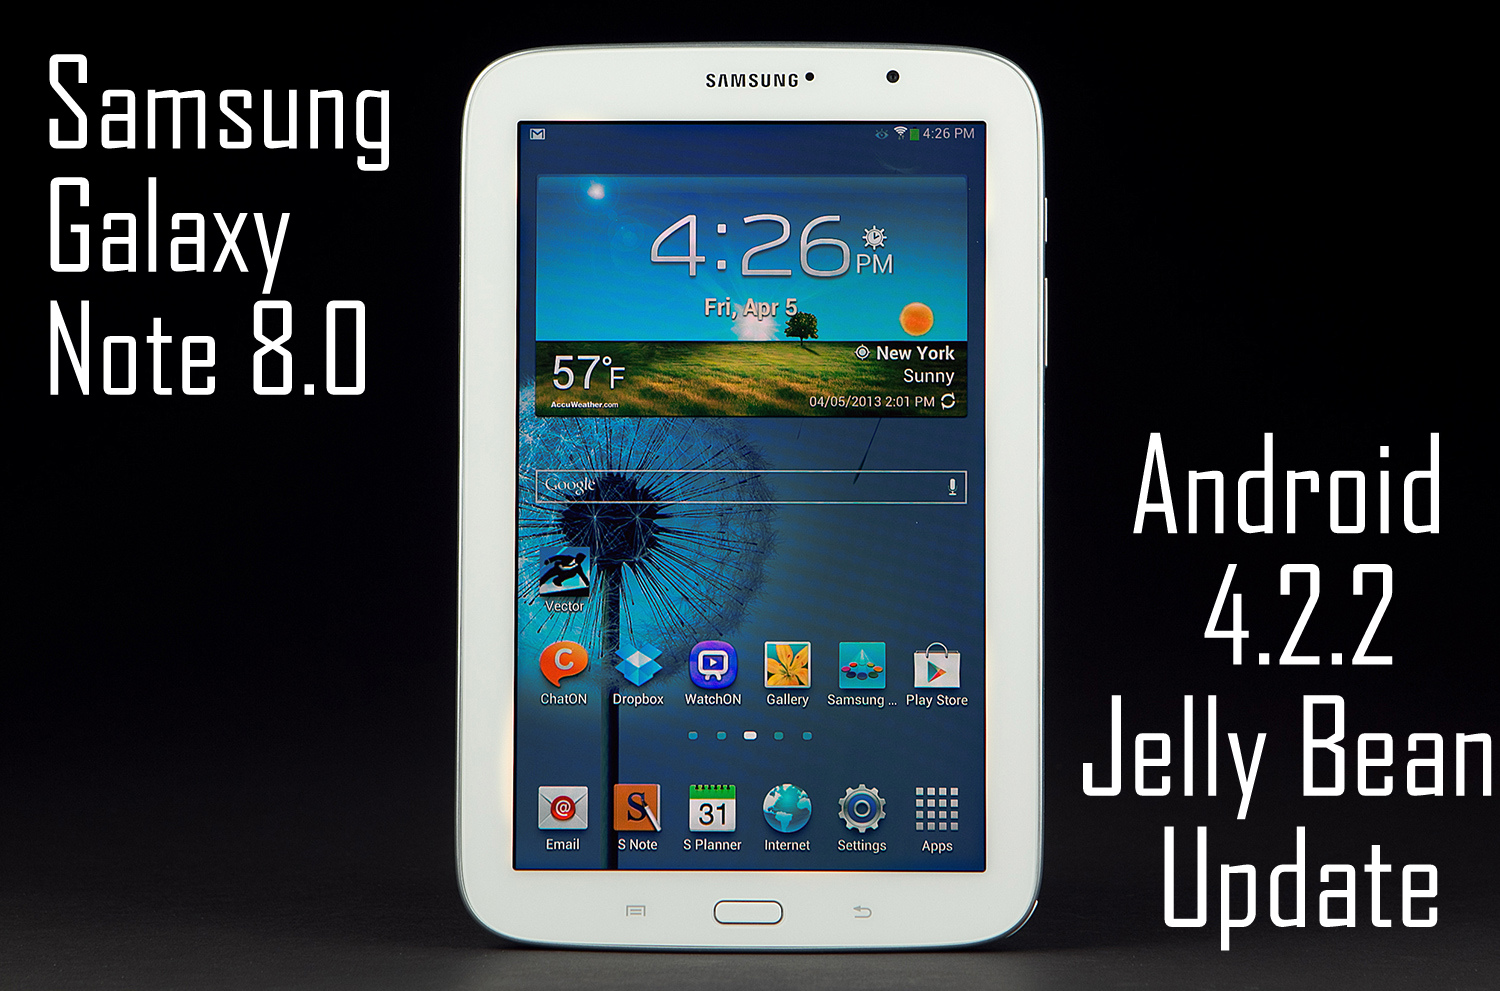 Samsung-Galaxy-Note-8.0-Review-android-home